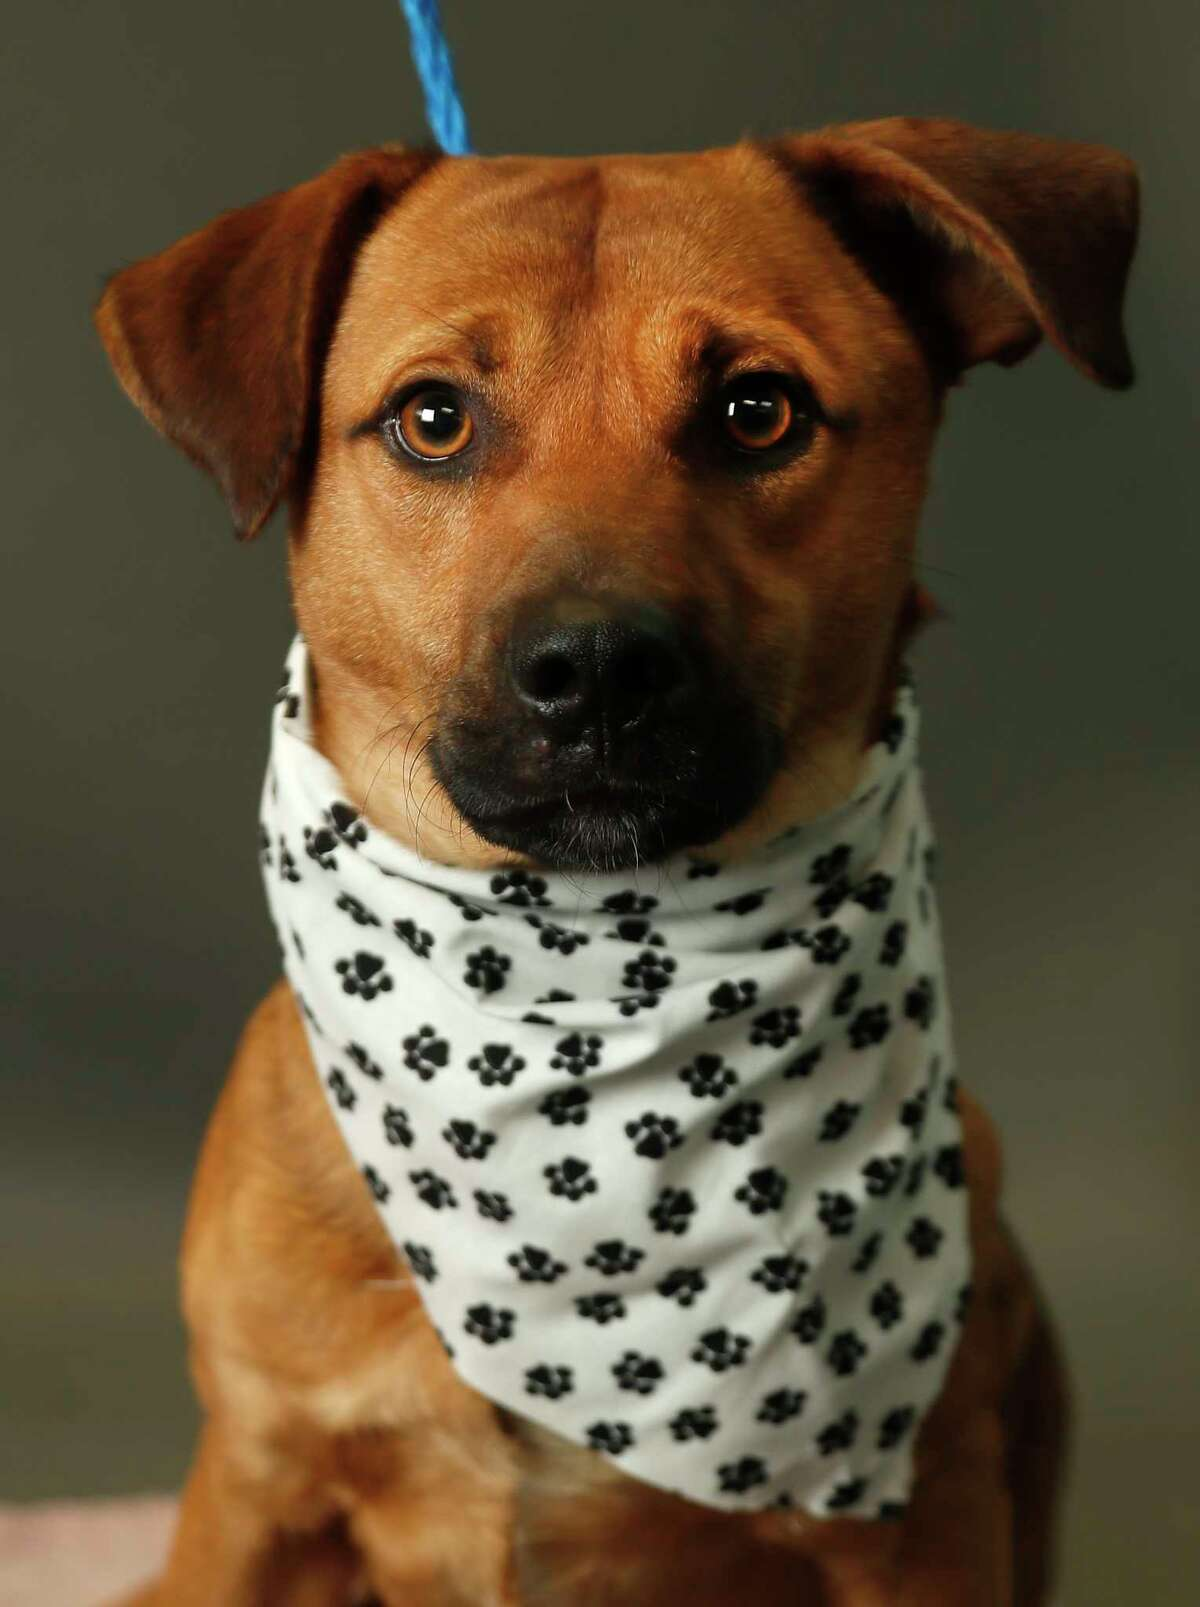 Handsome is a 1-year-old, male, Beagle/Labrador/Dachshund mix and is ready to be adopted from Harris County Animal Shelter. (Animal ID: A522863) Photographed Tuesday, Jan. 15, 2019, in Houston.